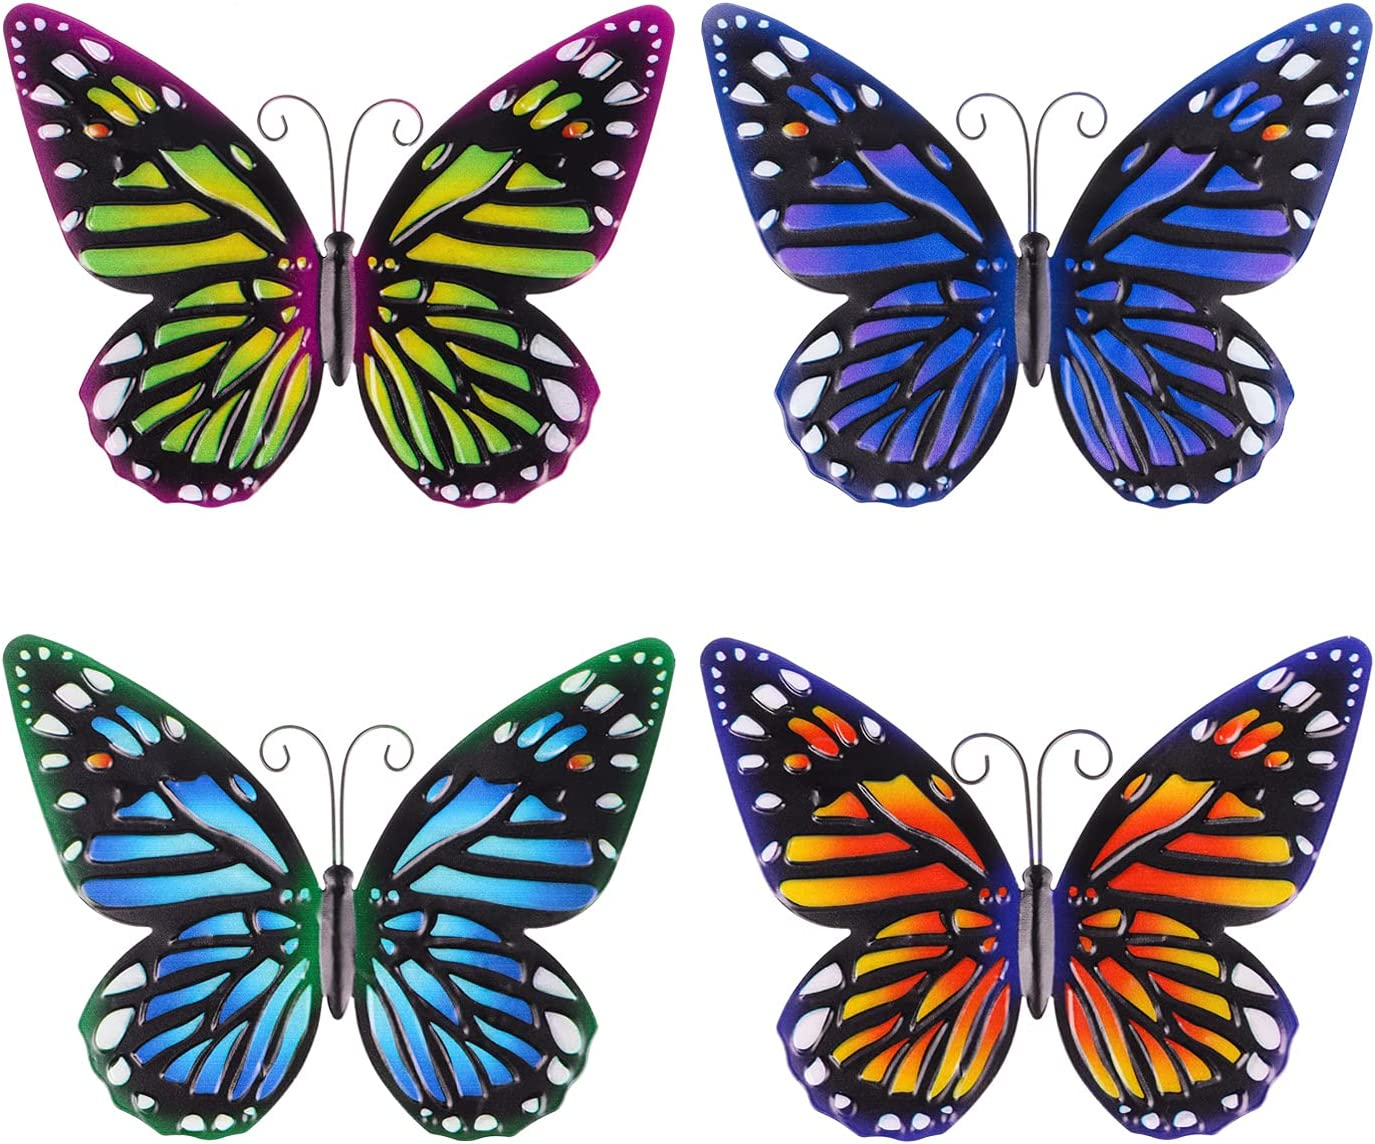 4PCS Metal Butterfly Wall Hanging Decoration,3D Wall Art Decor for Indoor or Outdoor,Set of 4 Butterflies Ornament for Garden,Patio,Fence,Garden,Yard,Gifts for Kids